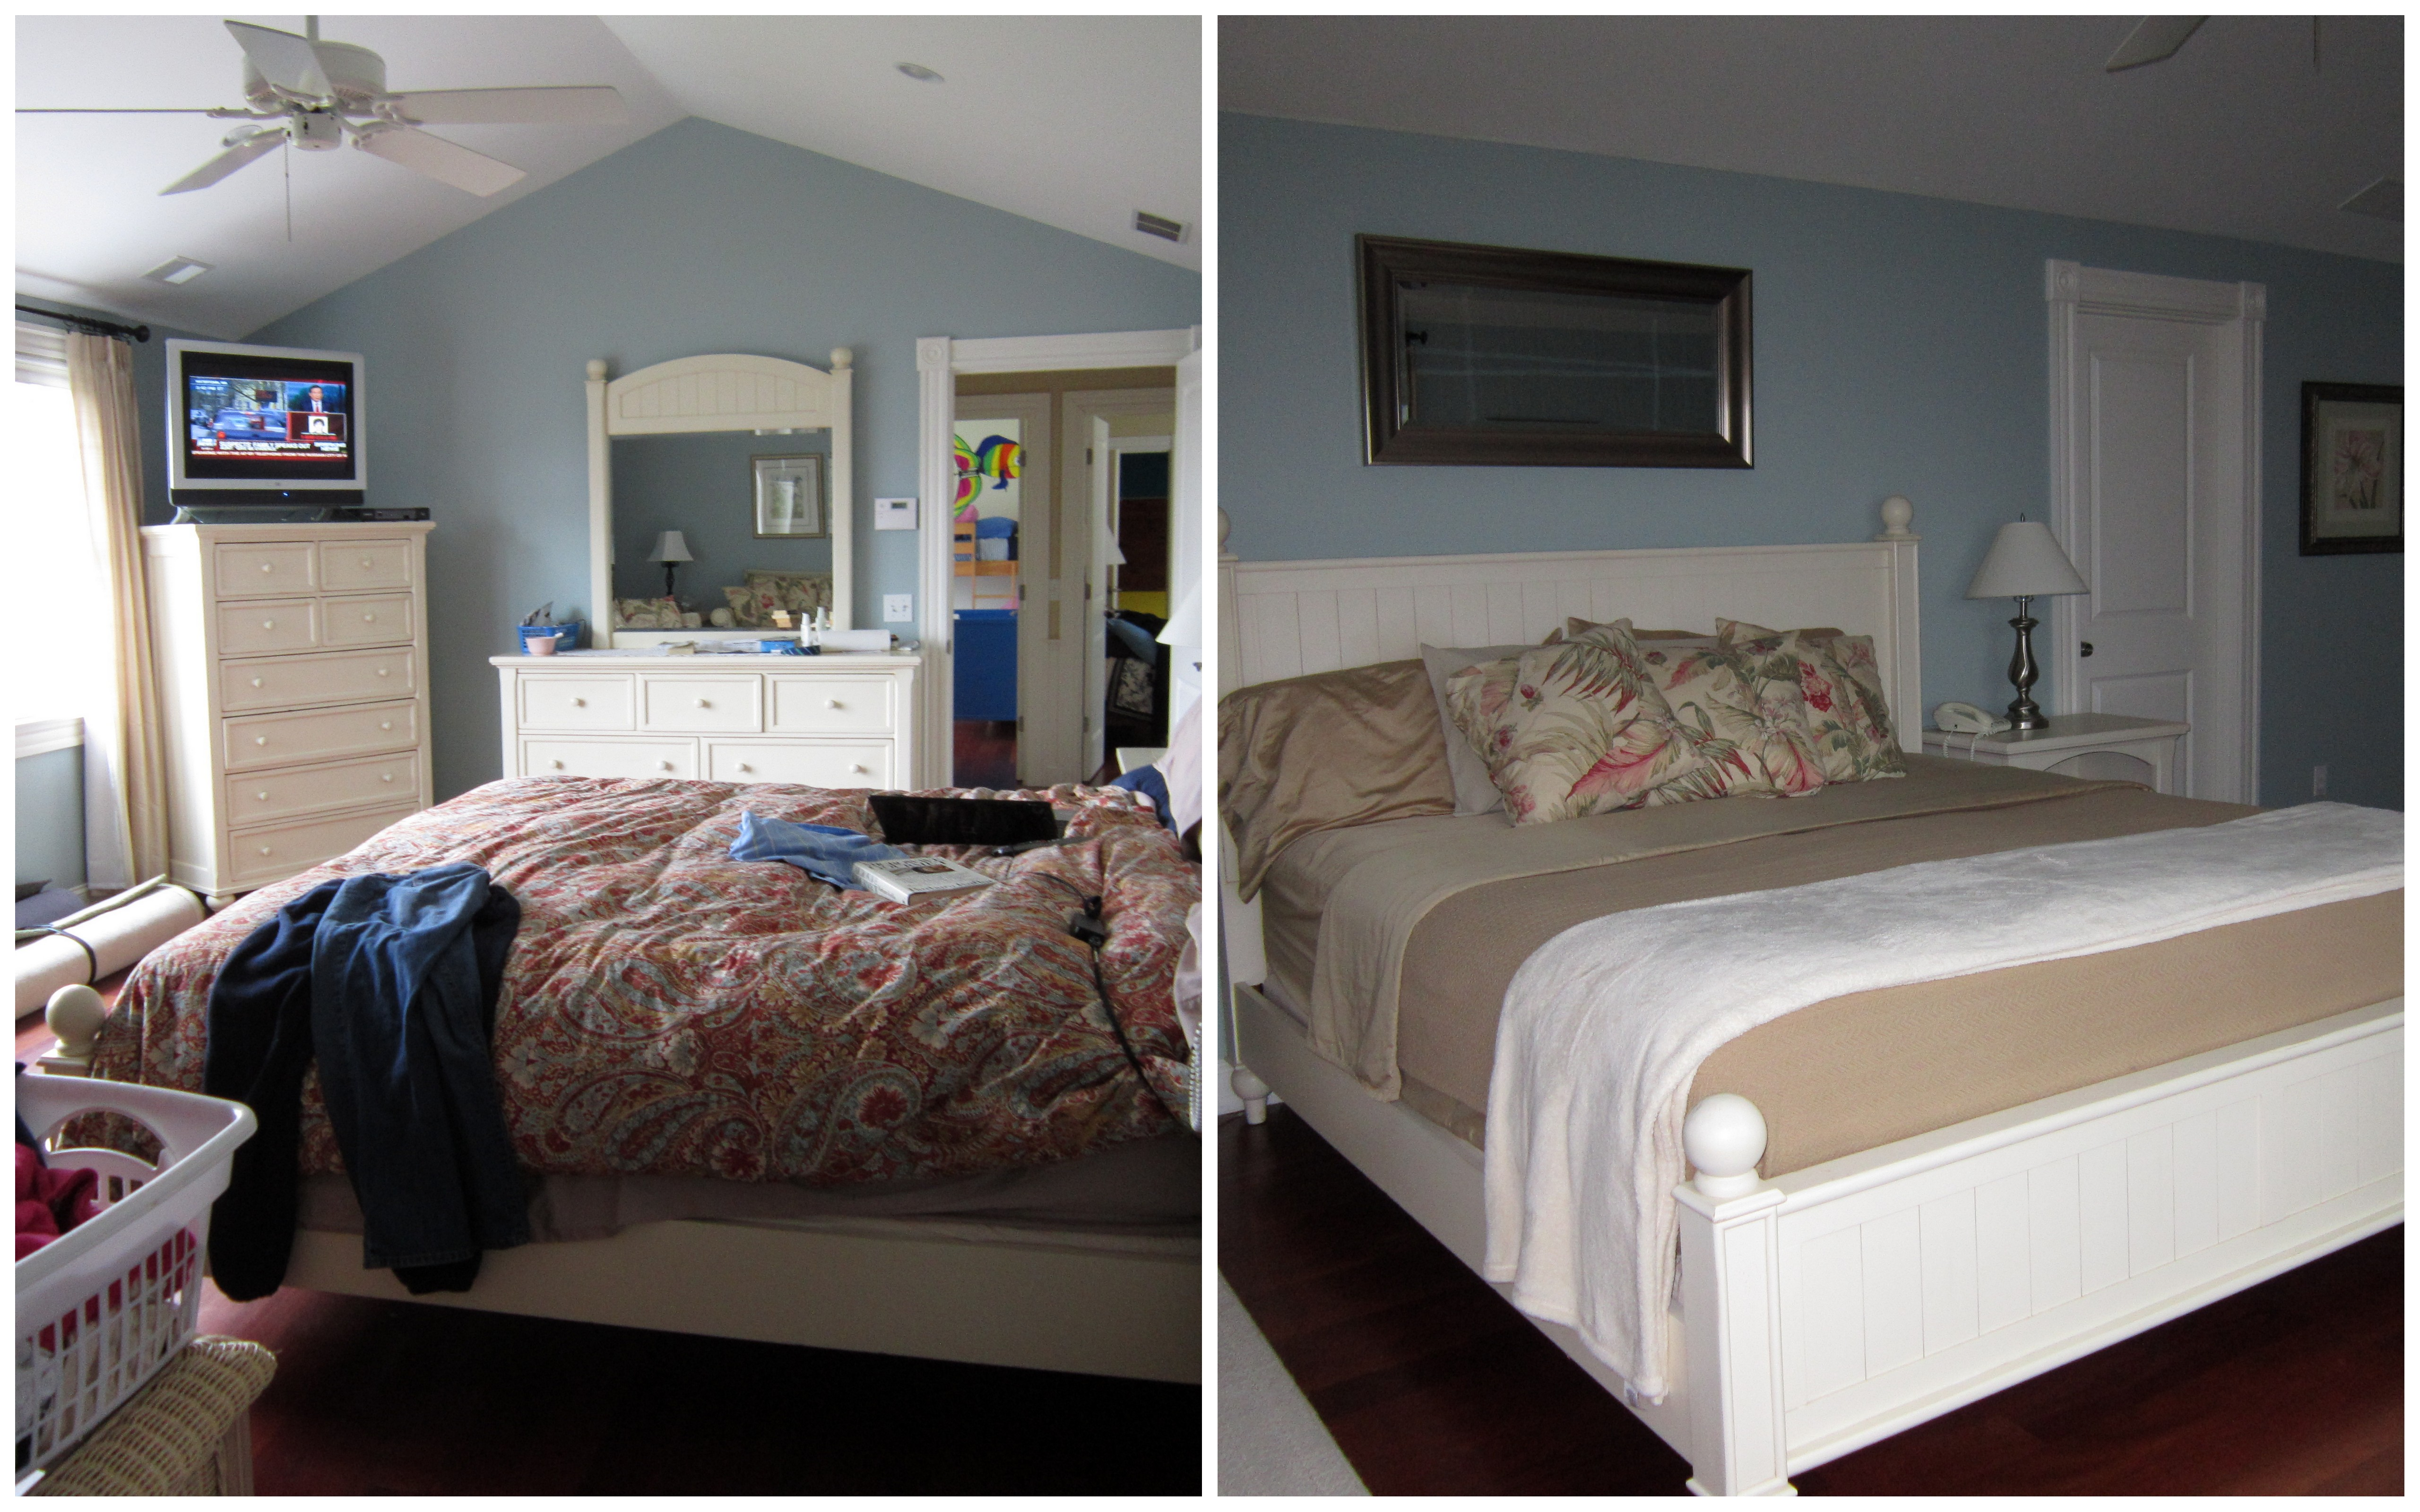 Before & After Pics11